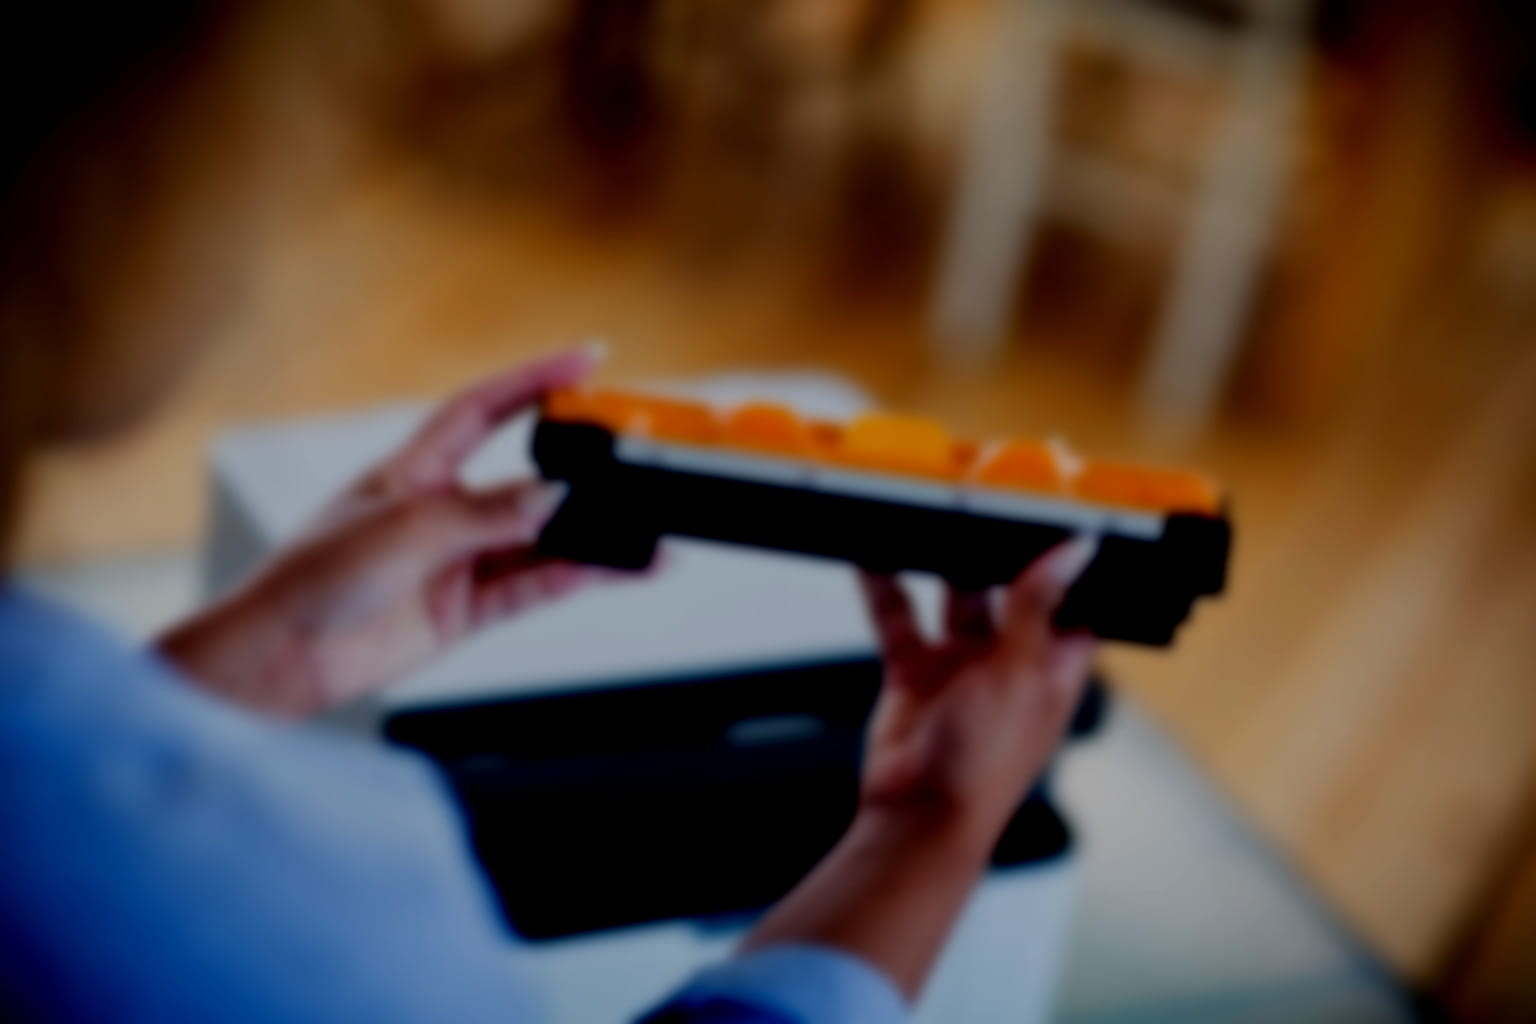 A woman holds a Brother printer toner cartridge - the image is blurred